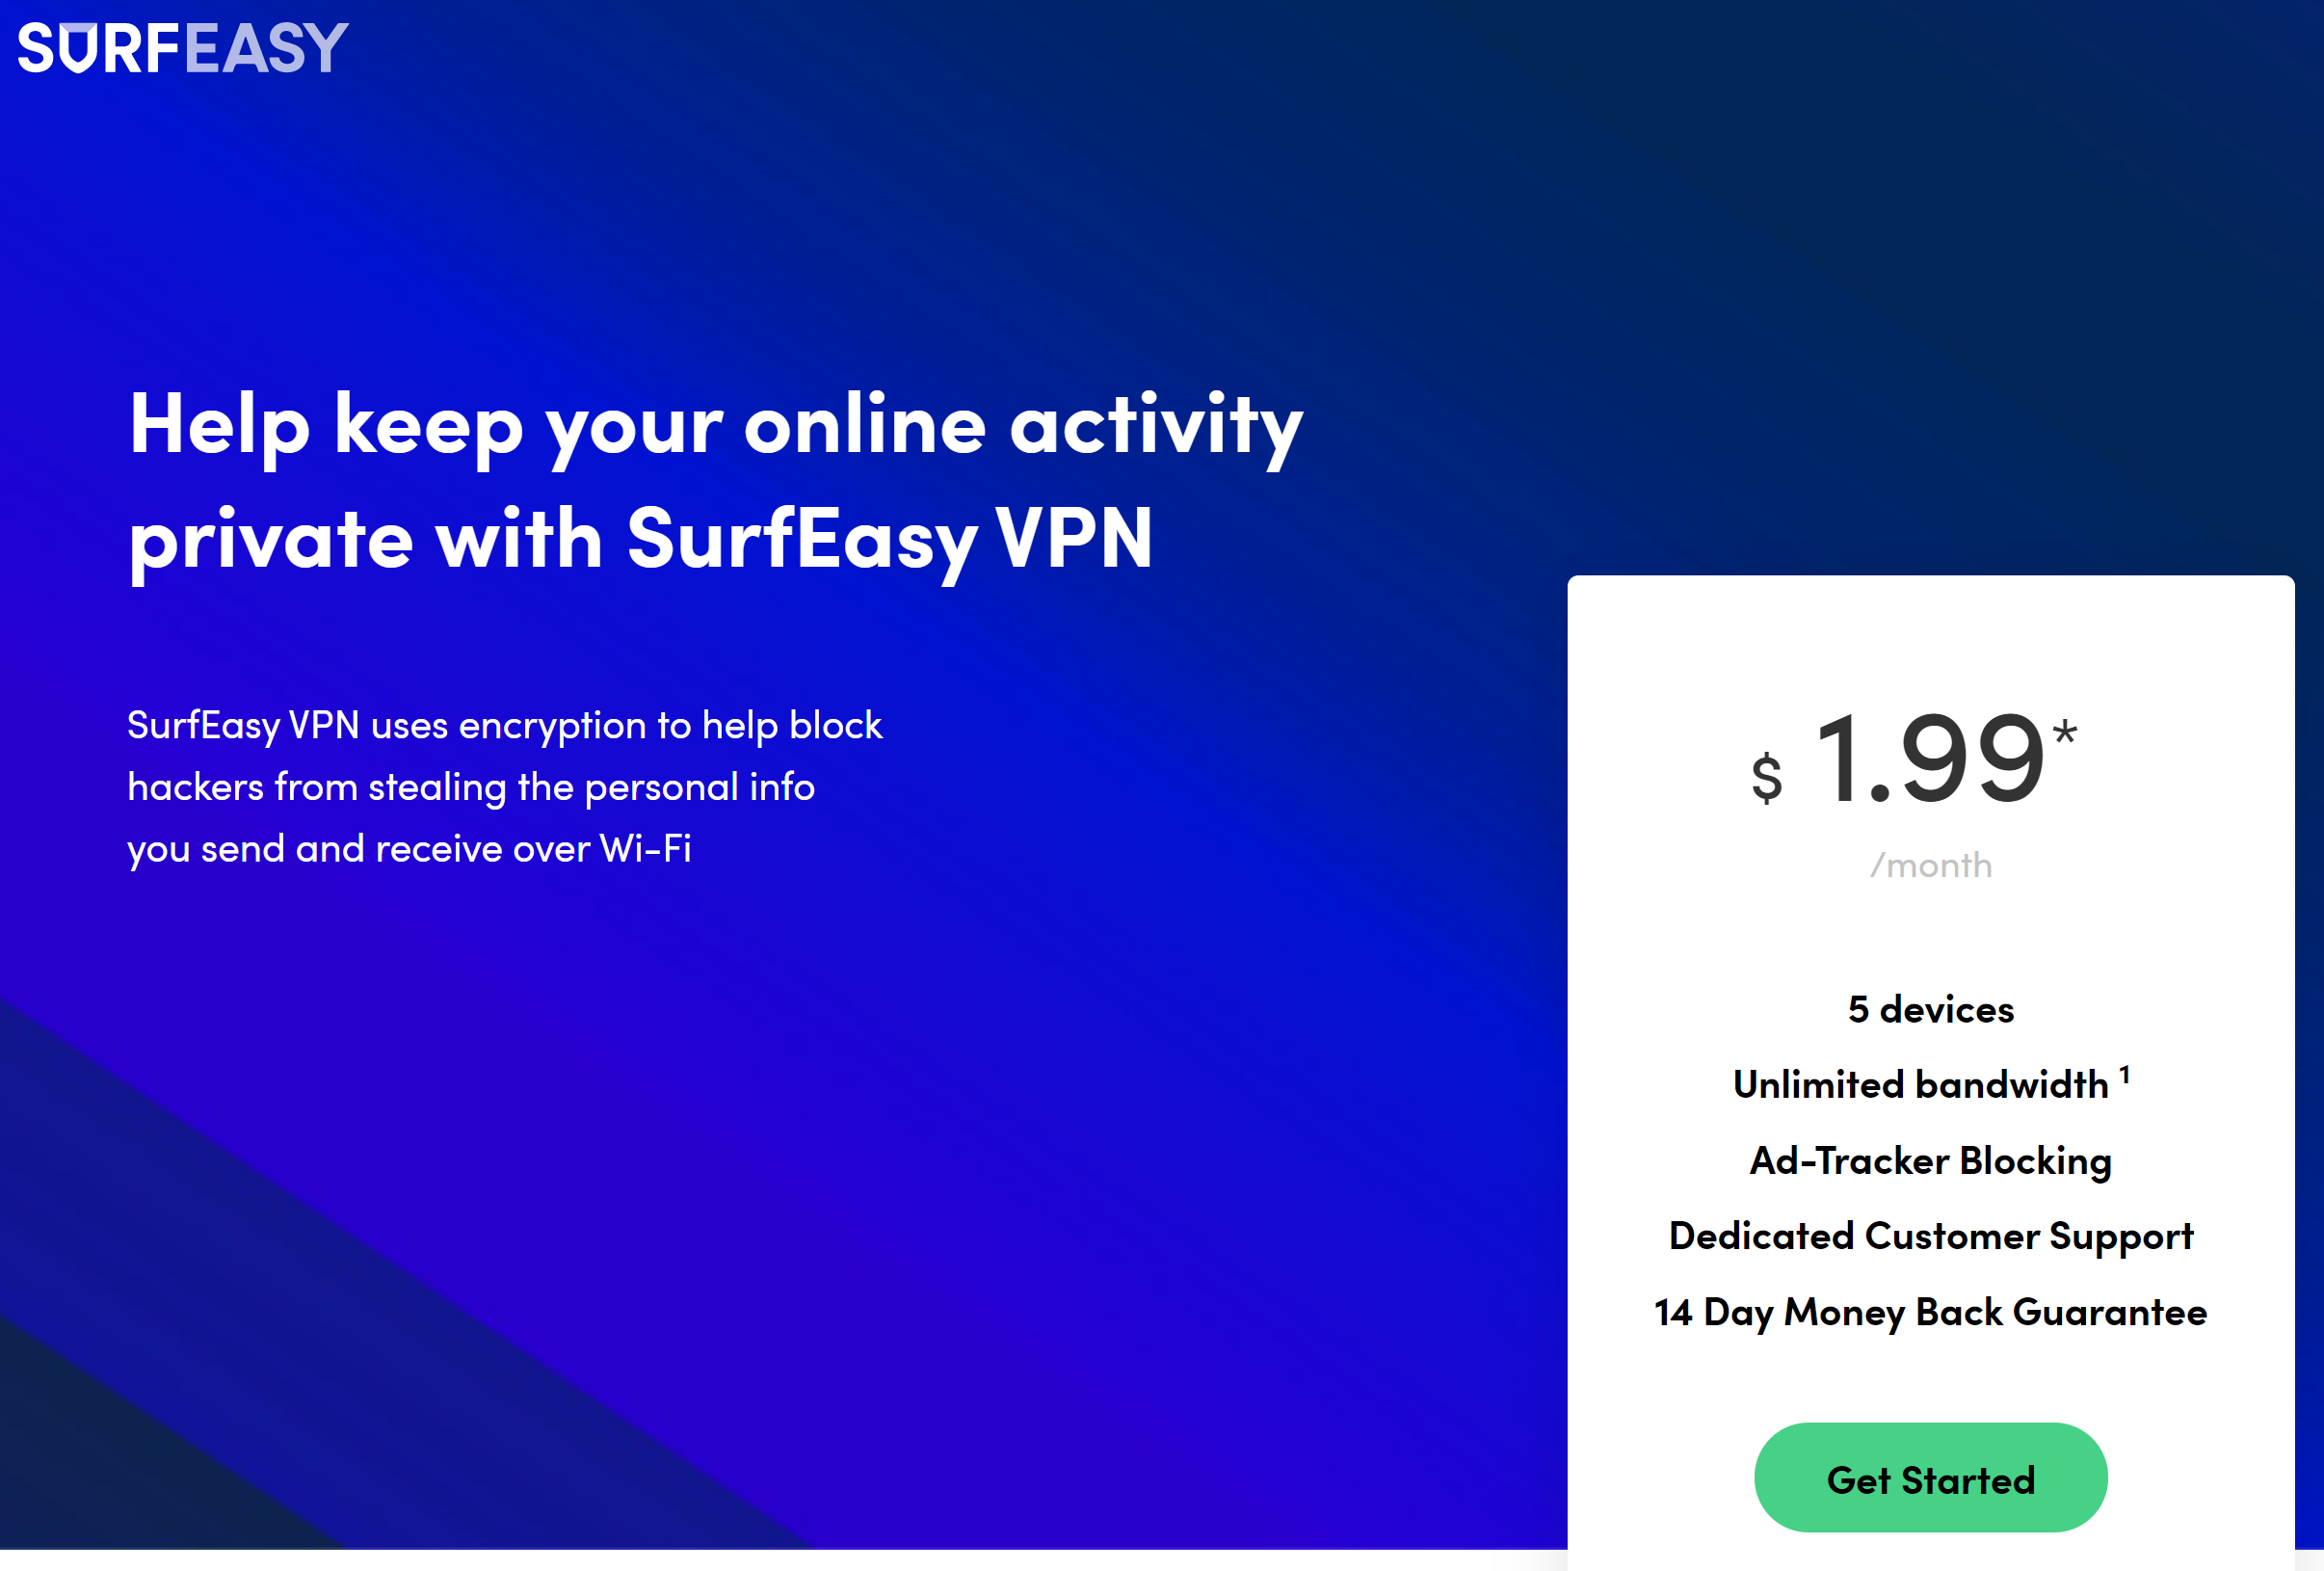 SurfEasy homepage